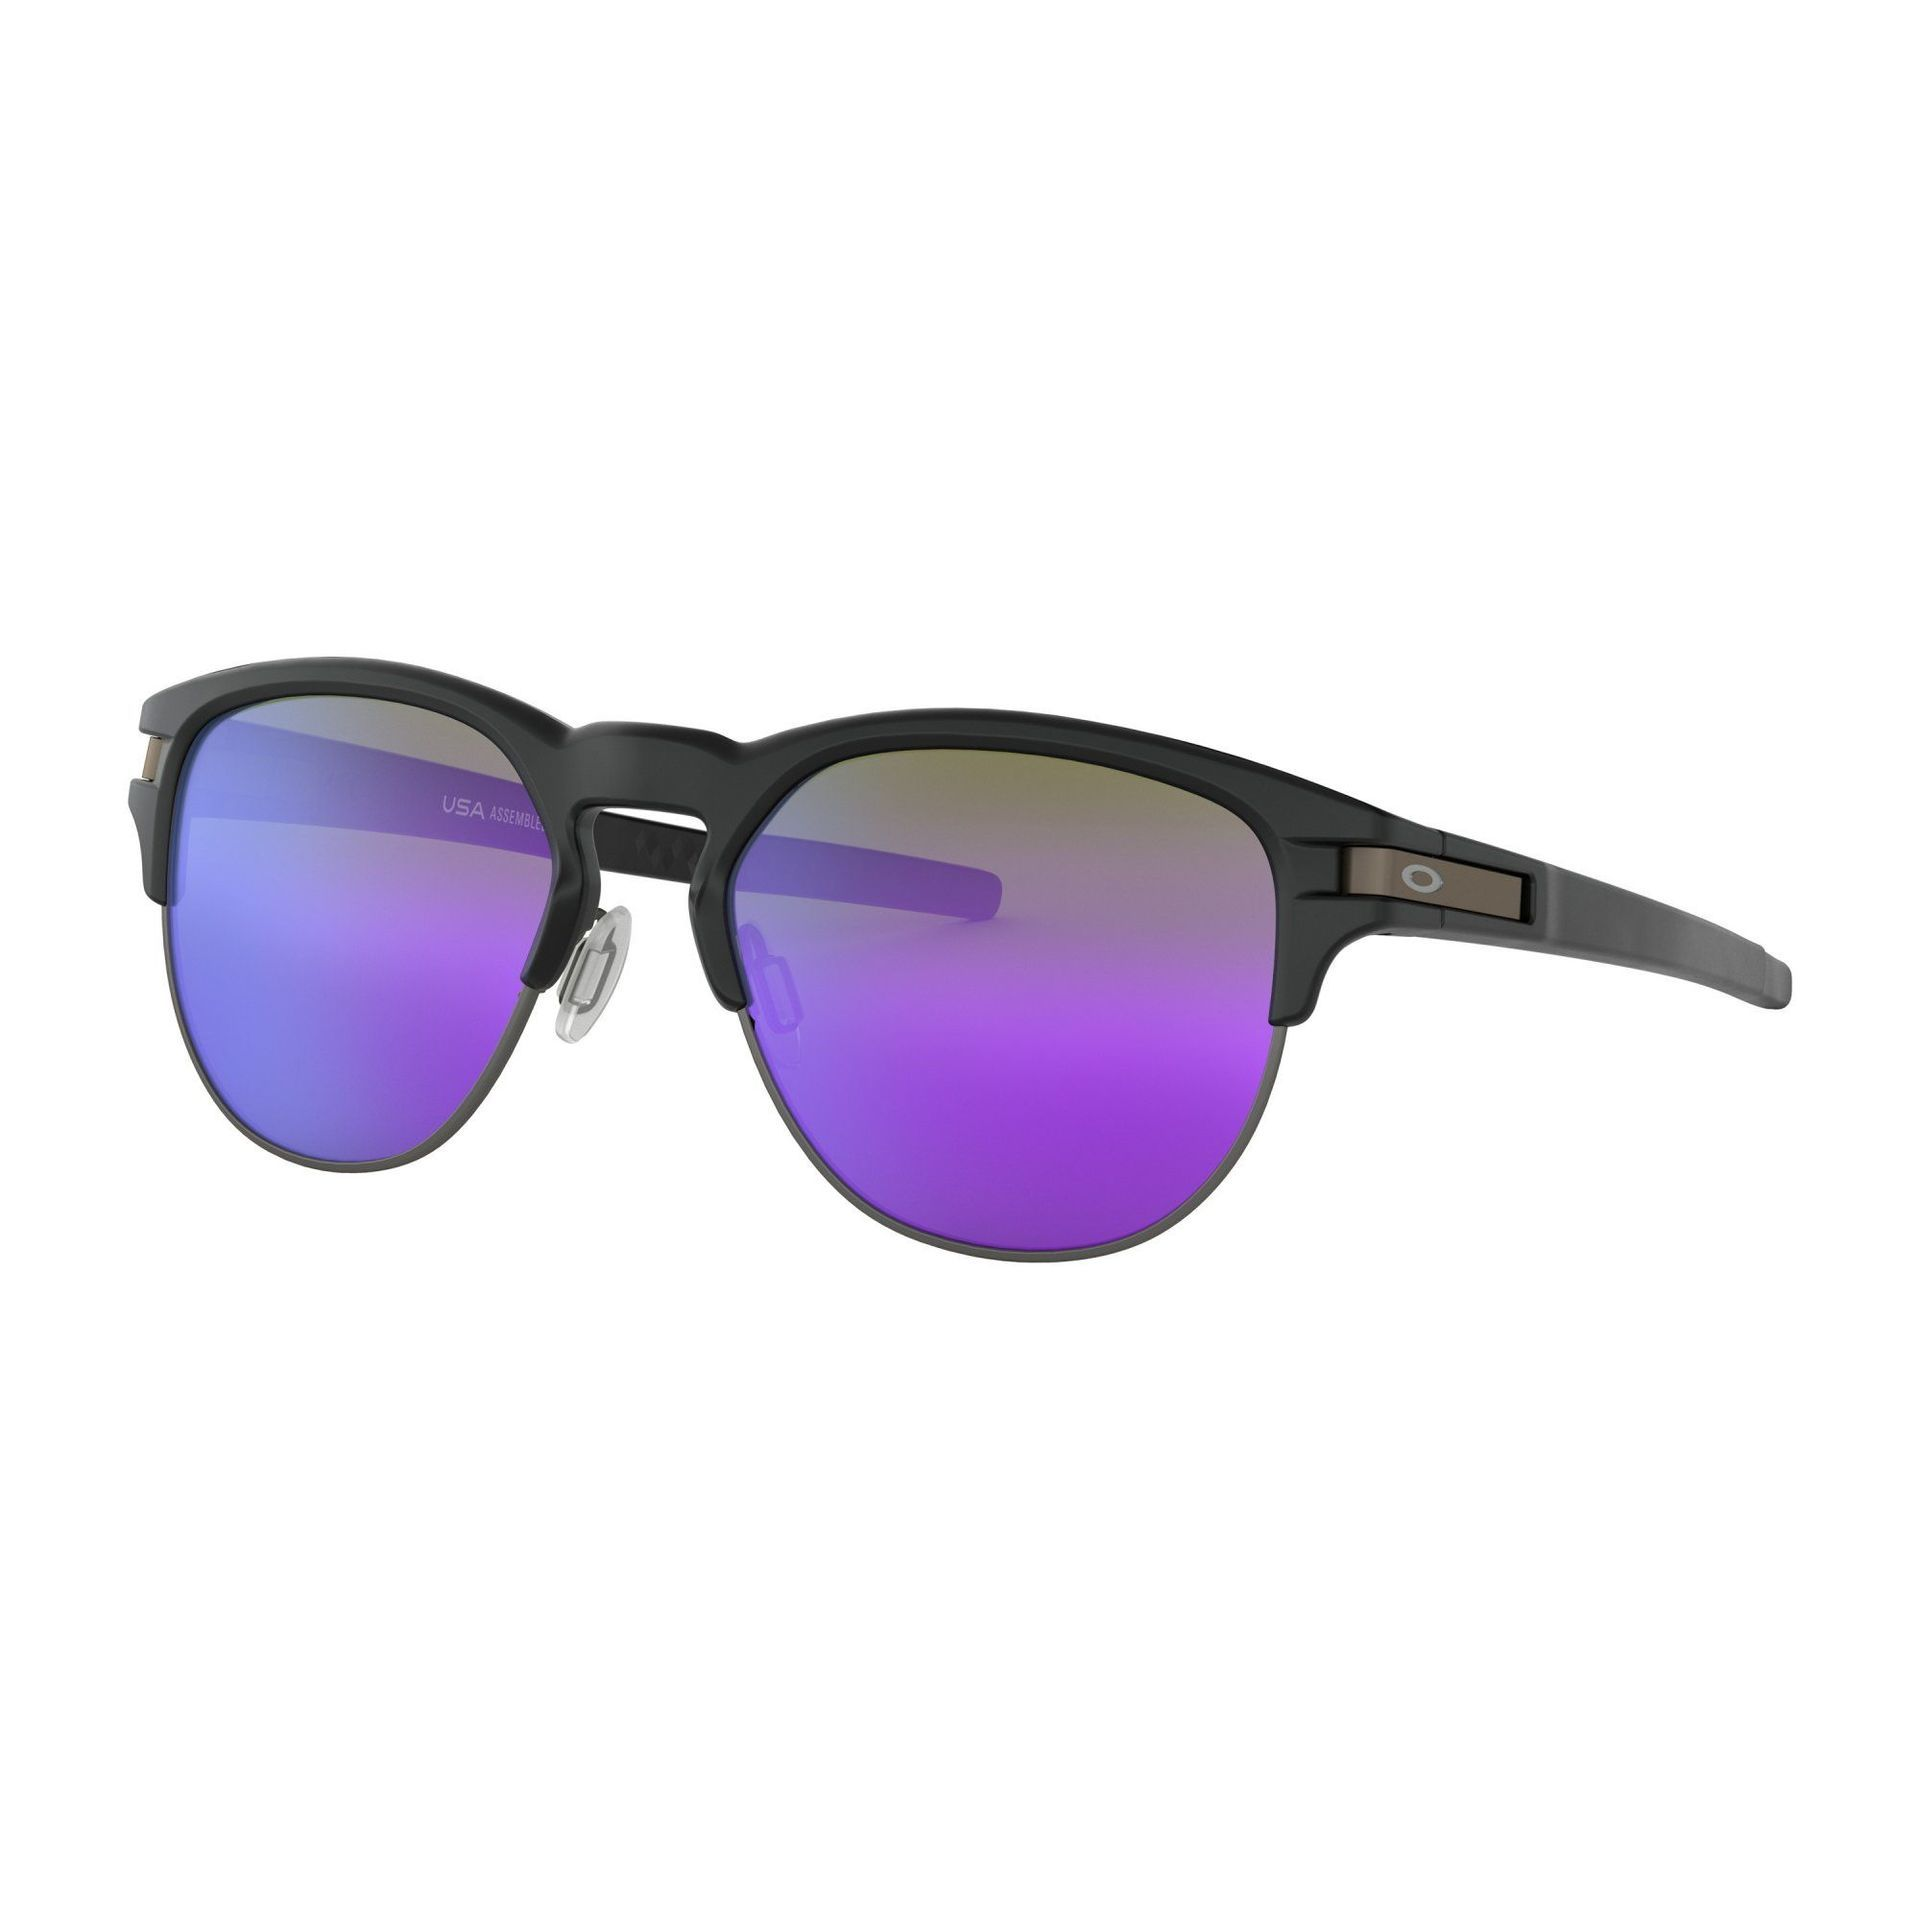 OKULARY OAKLEY LATCH KEY MATTE BLACK|VIOLET IRIDIUM 1